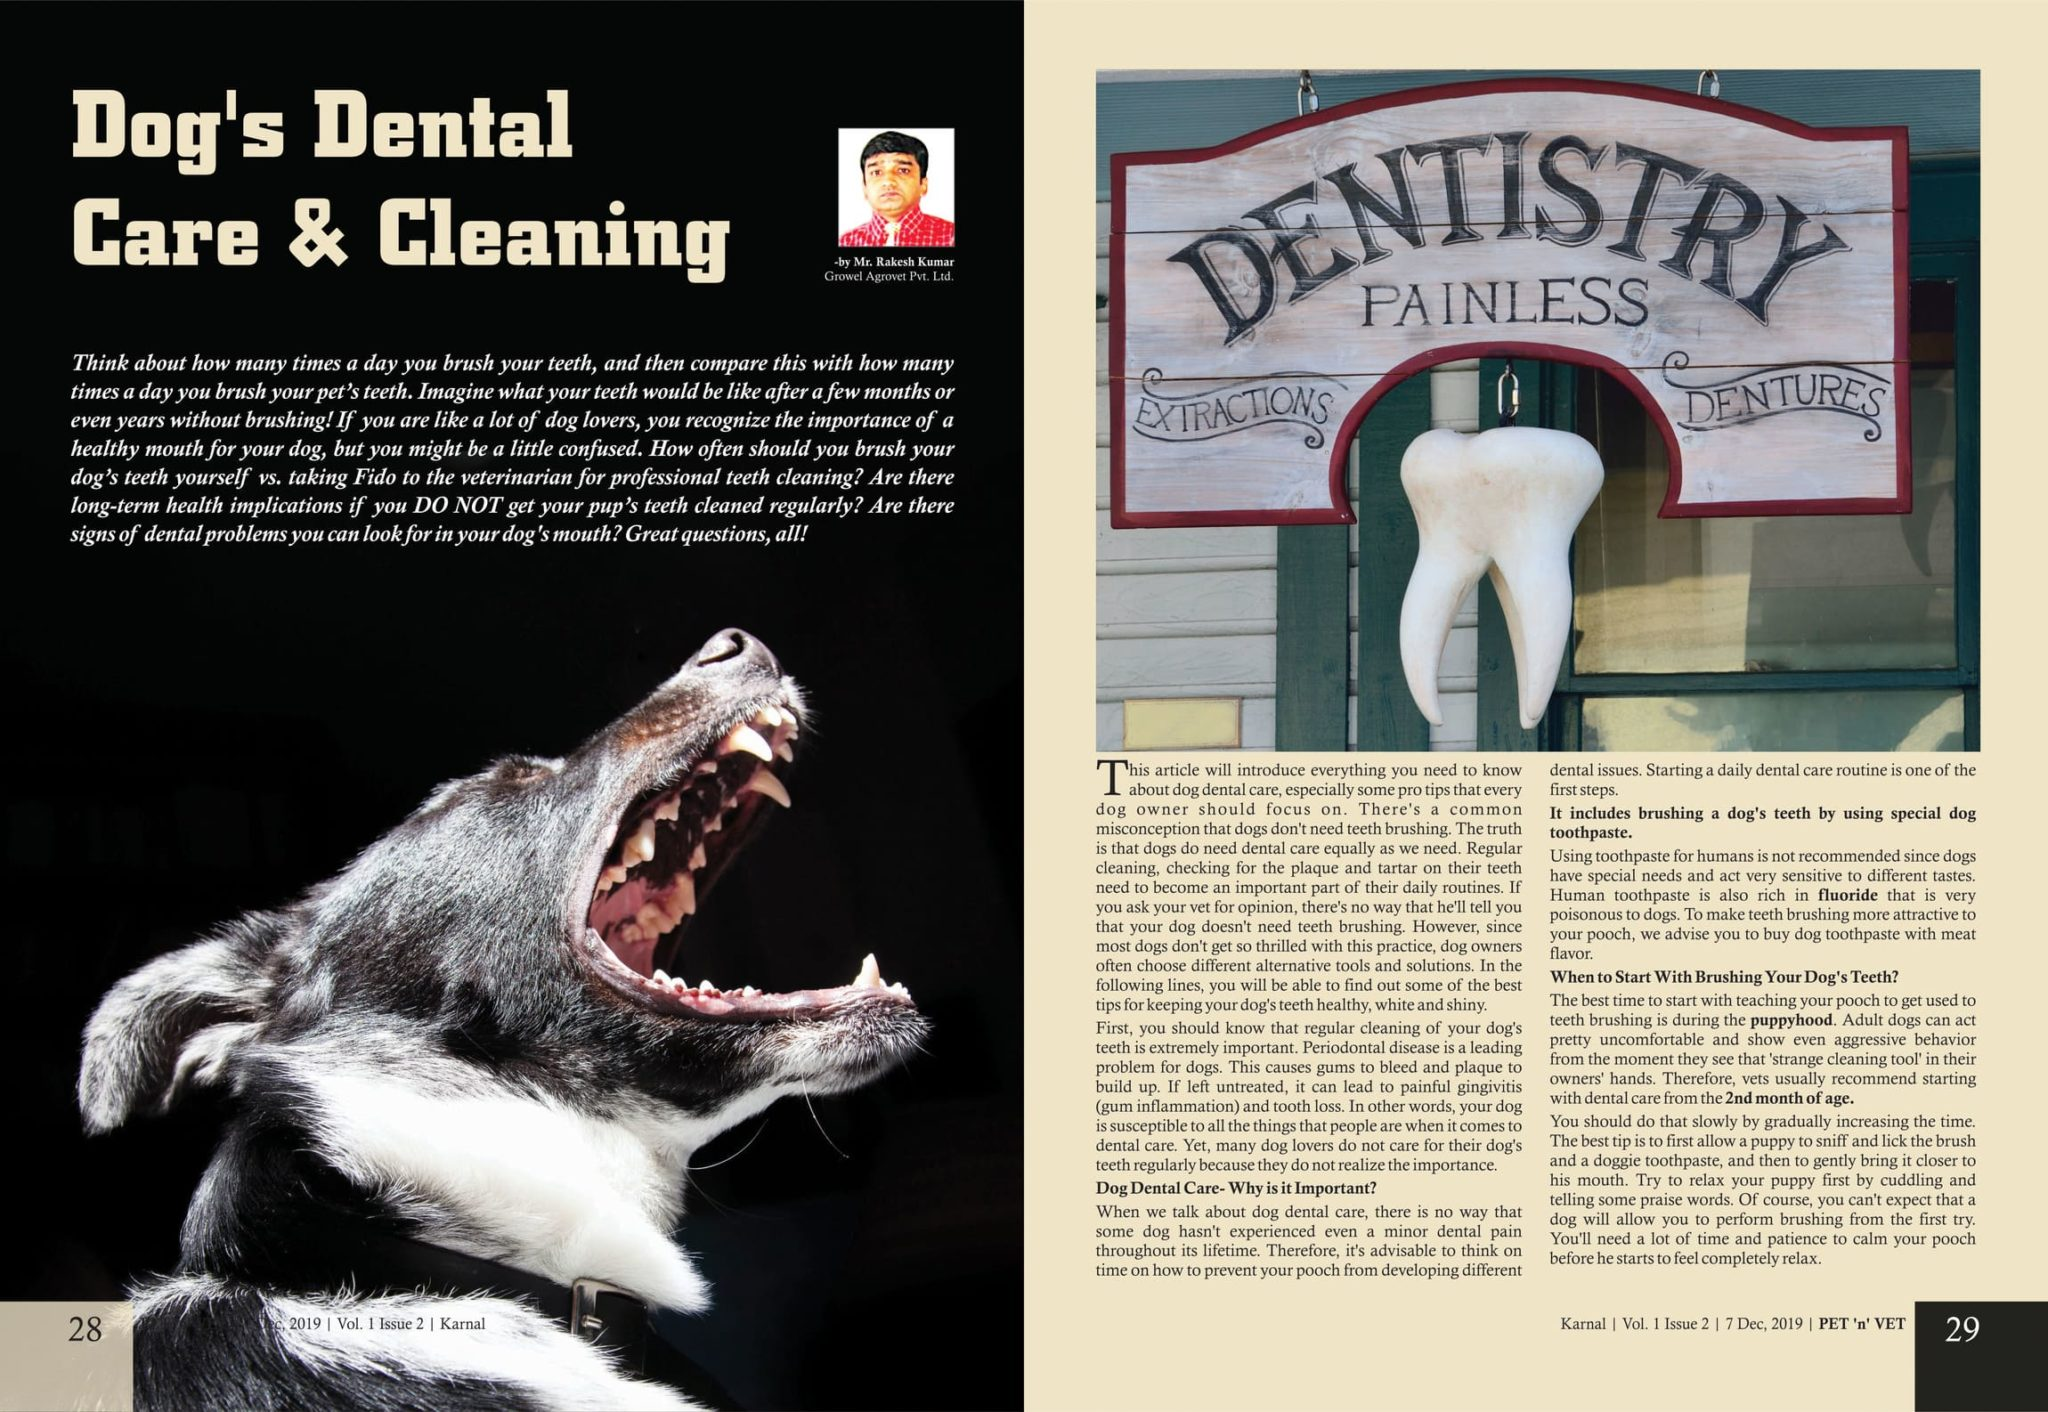 Dog's Dental Care & Cleaning